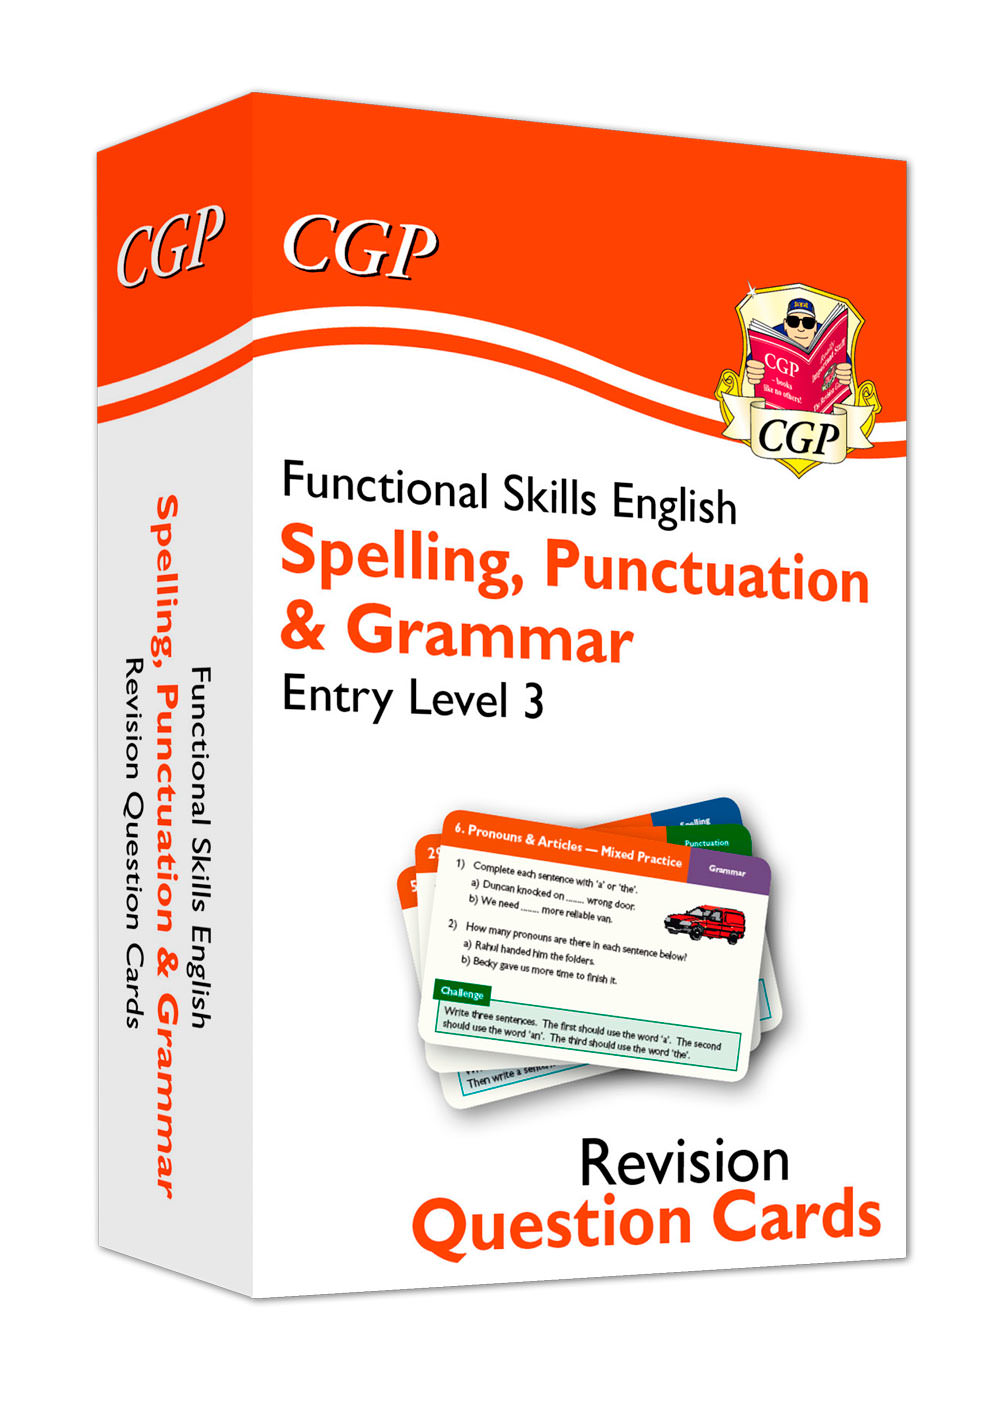 E3GFA1 - New Functional Skills English Revision Question Cards: Spelling, Punctuation & Grammar Entr